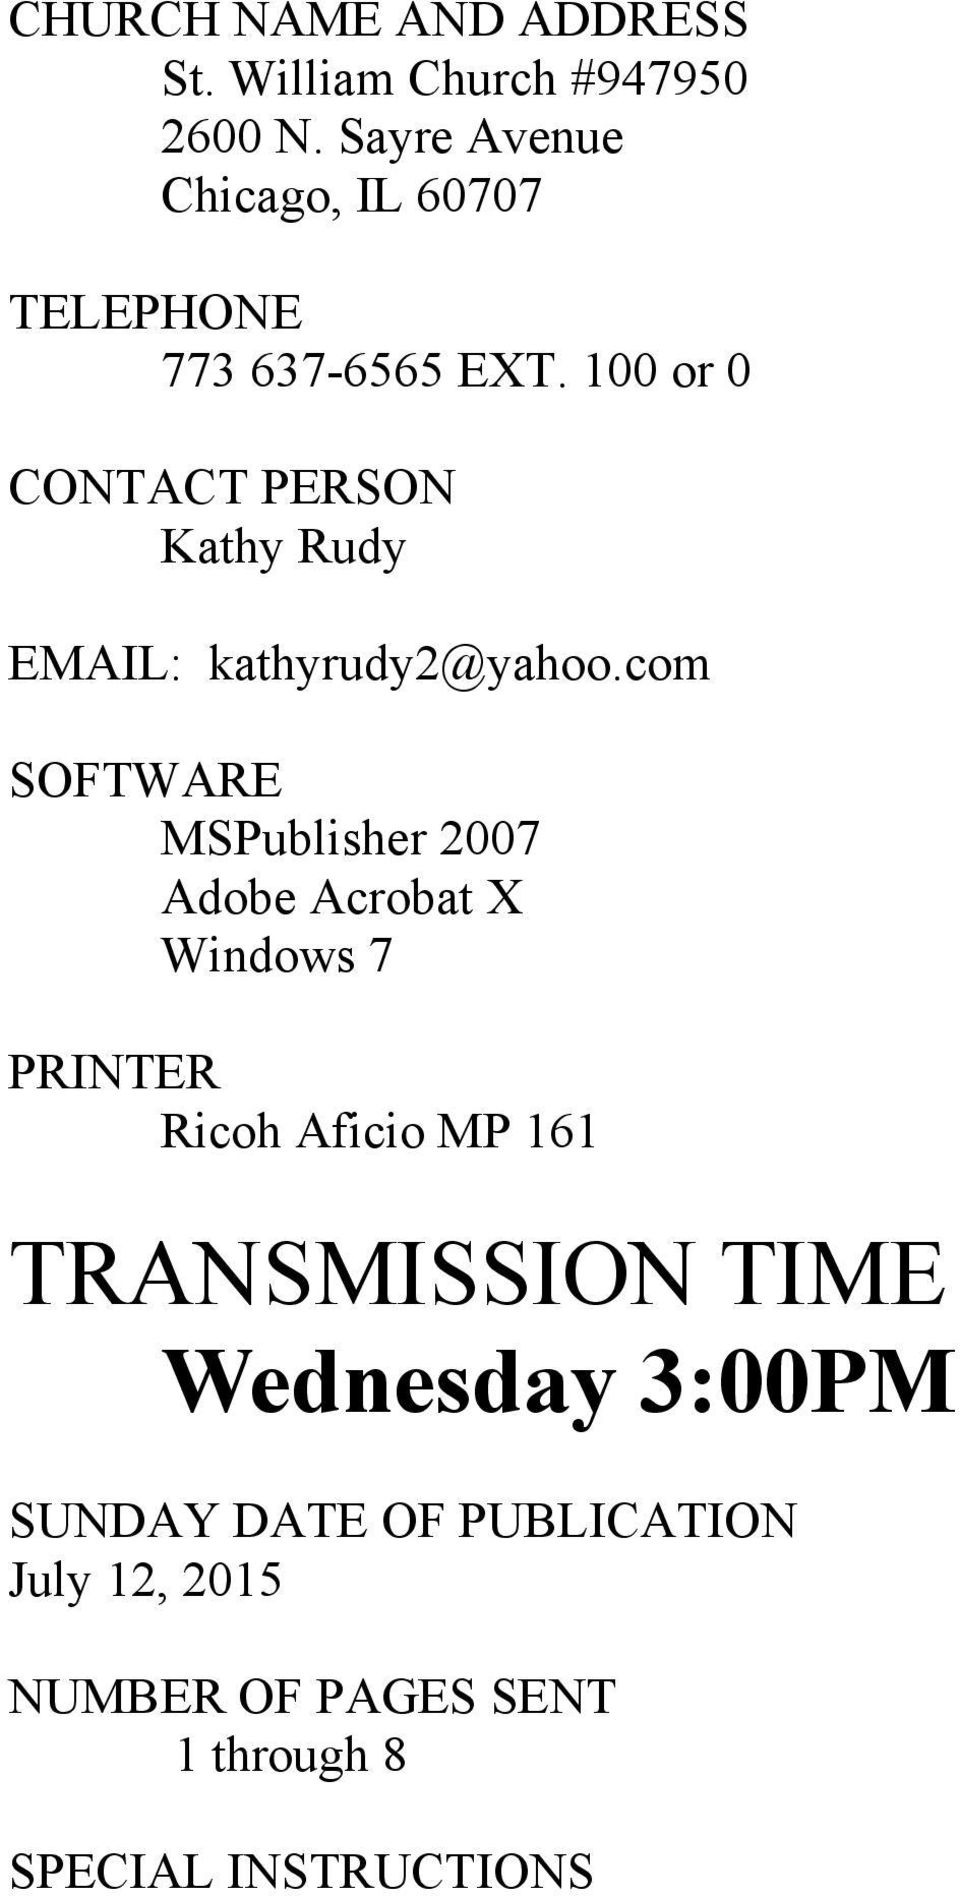 100 or 0 CONTACT PERSON Kathy Rudy EMAIL: kathyrudy2@yahoo.